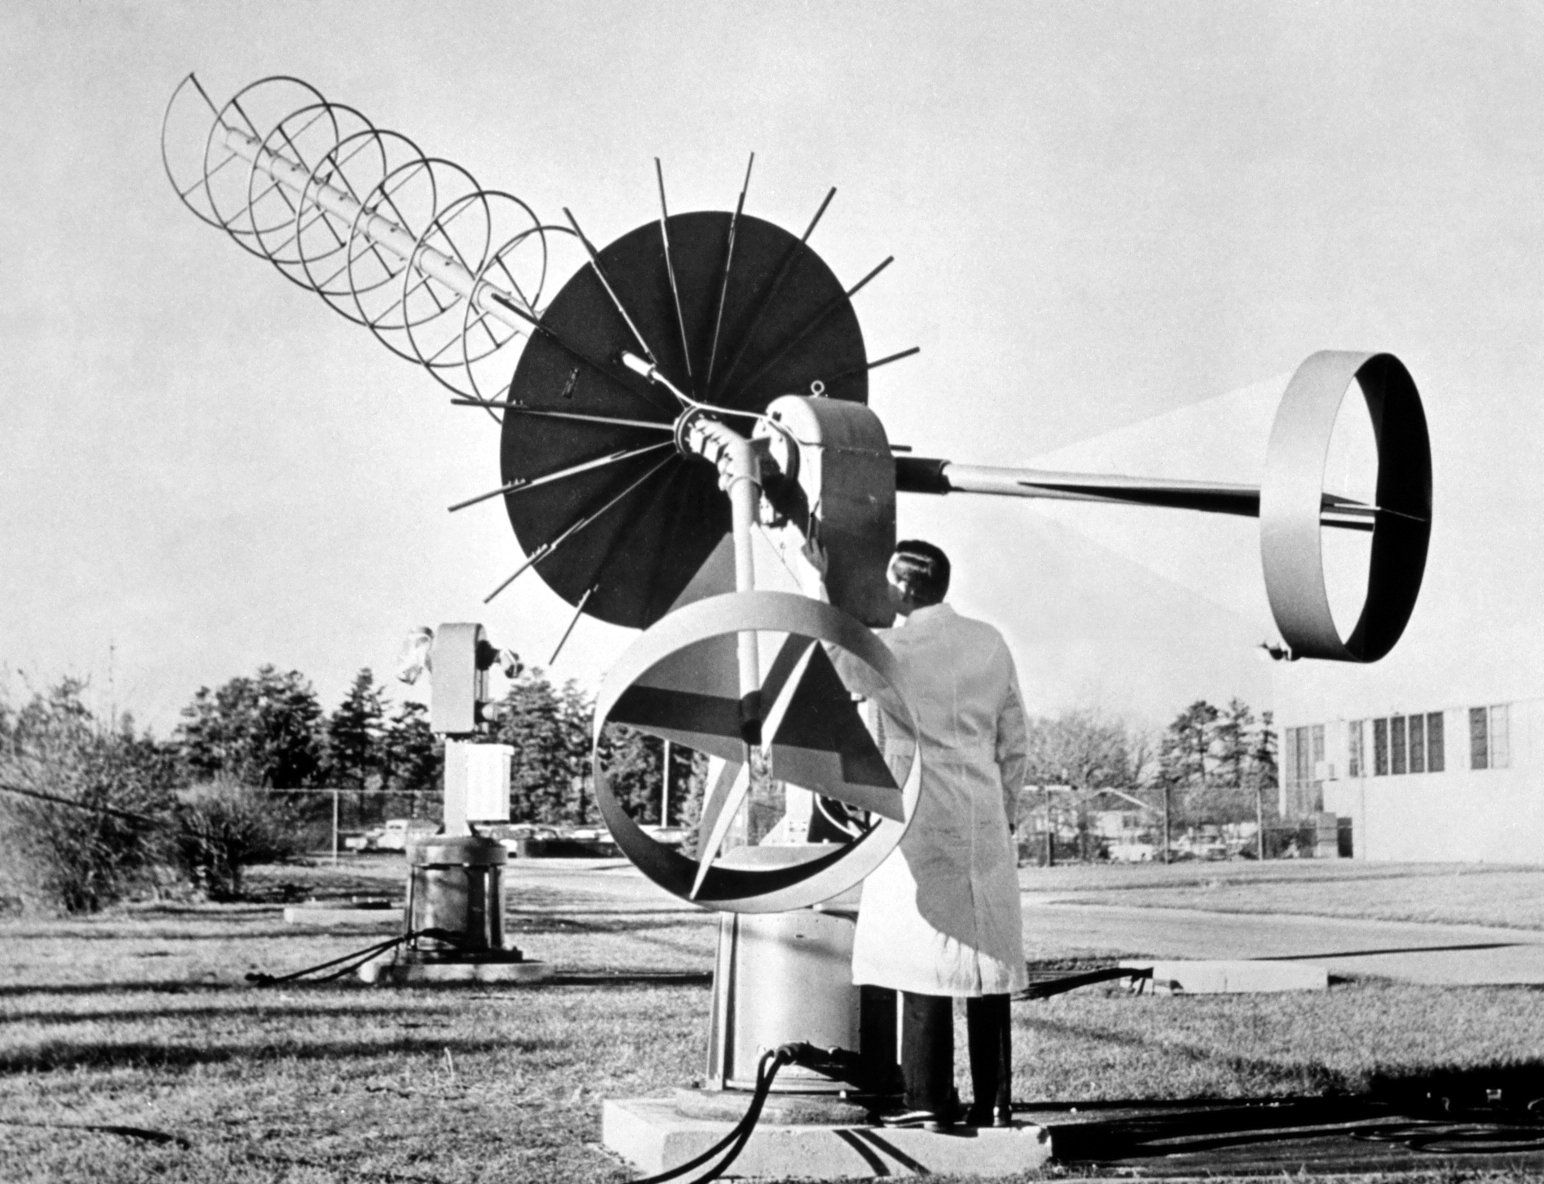 A manual tracking 13 db heliz antenna designed to receive TIROS picture information from the Automatic Picture Transmission (APT) system.